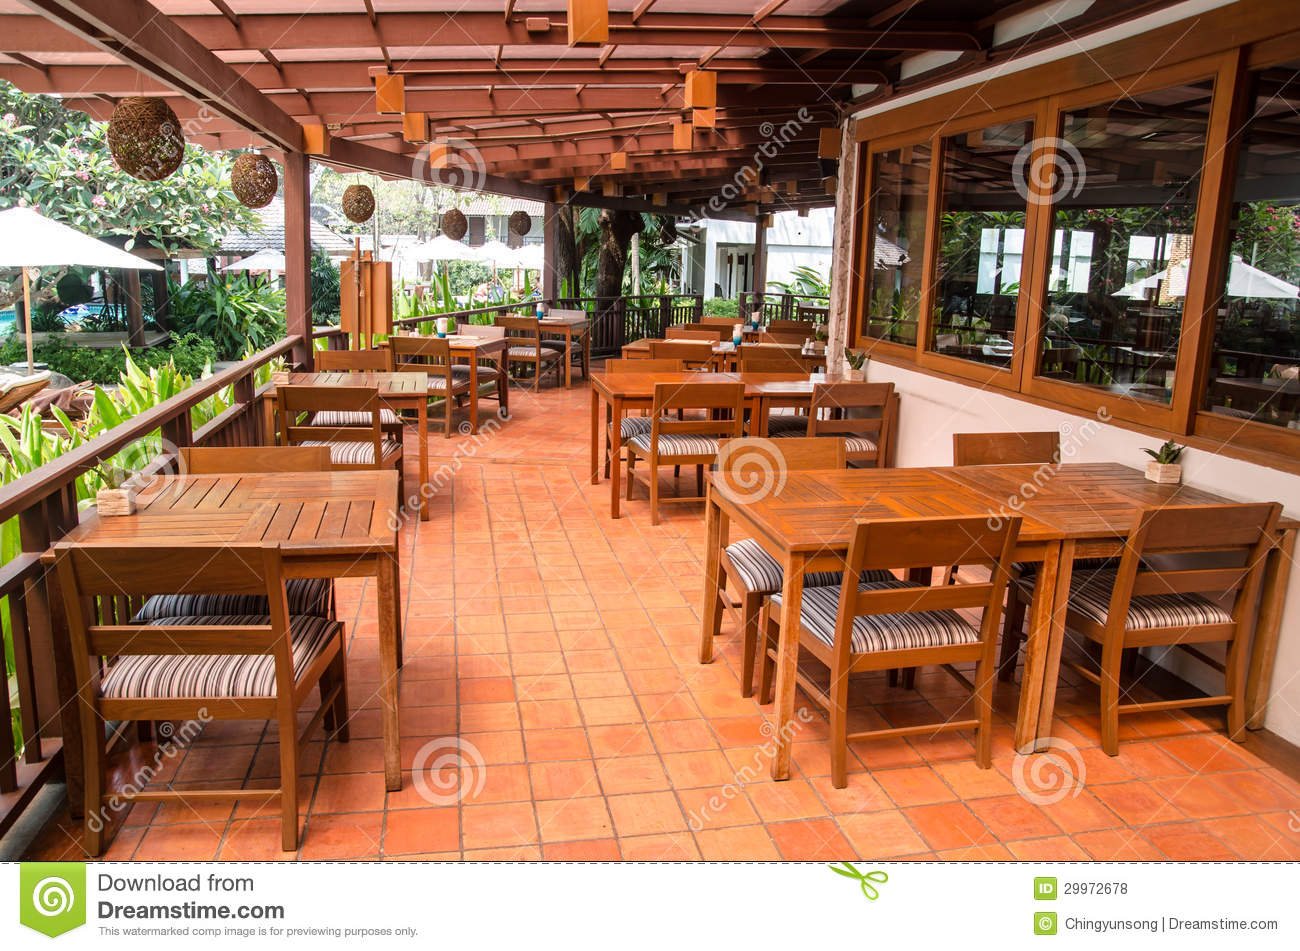 Outdoor restaurant interiour with wooden floor and